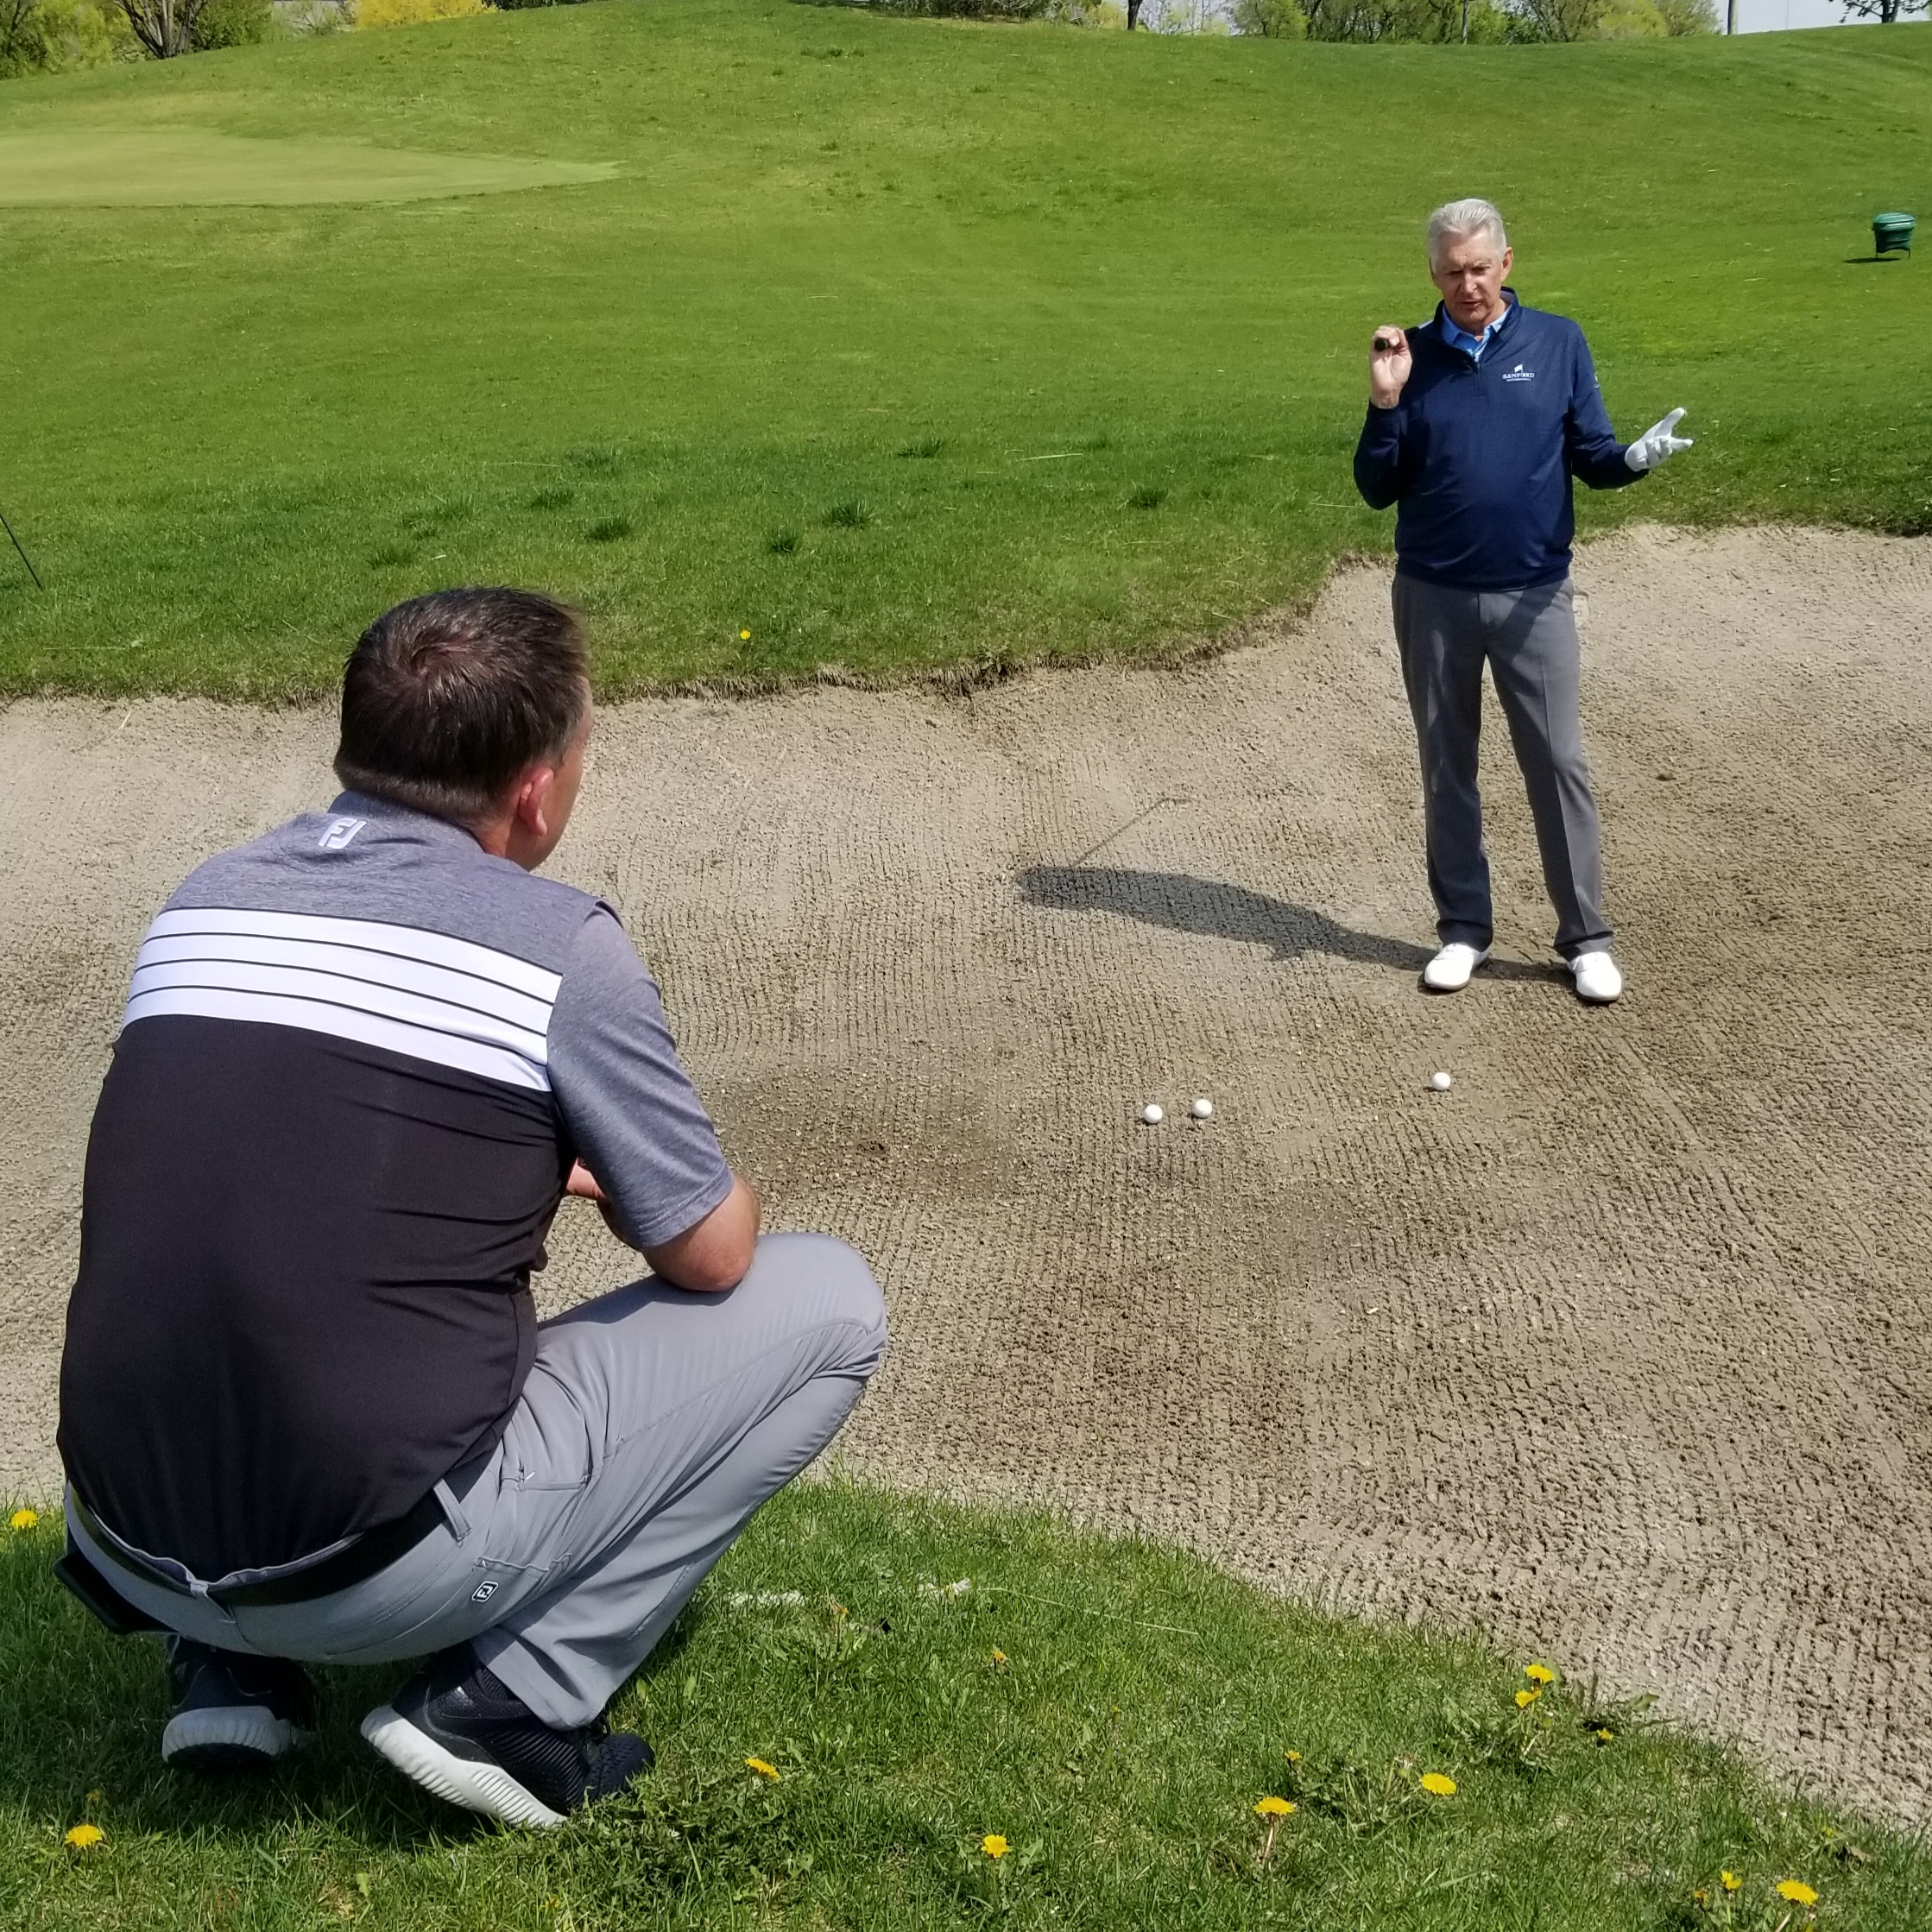 Todd Kolb and Andy North discussing bunker shots